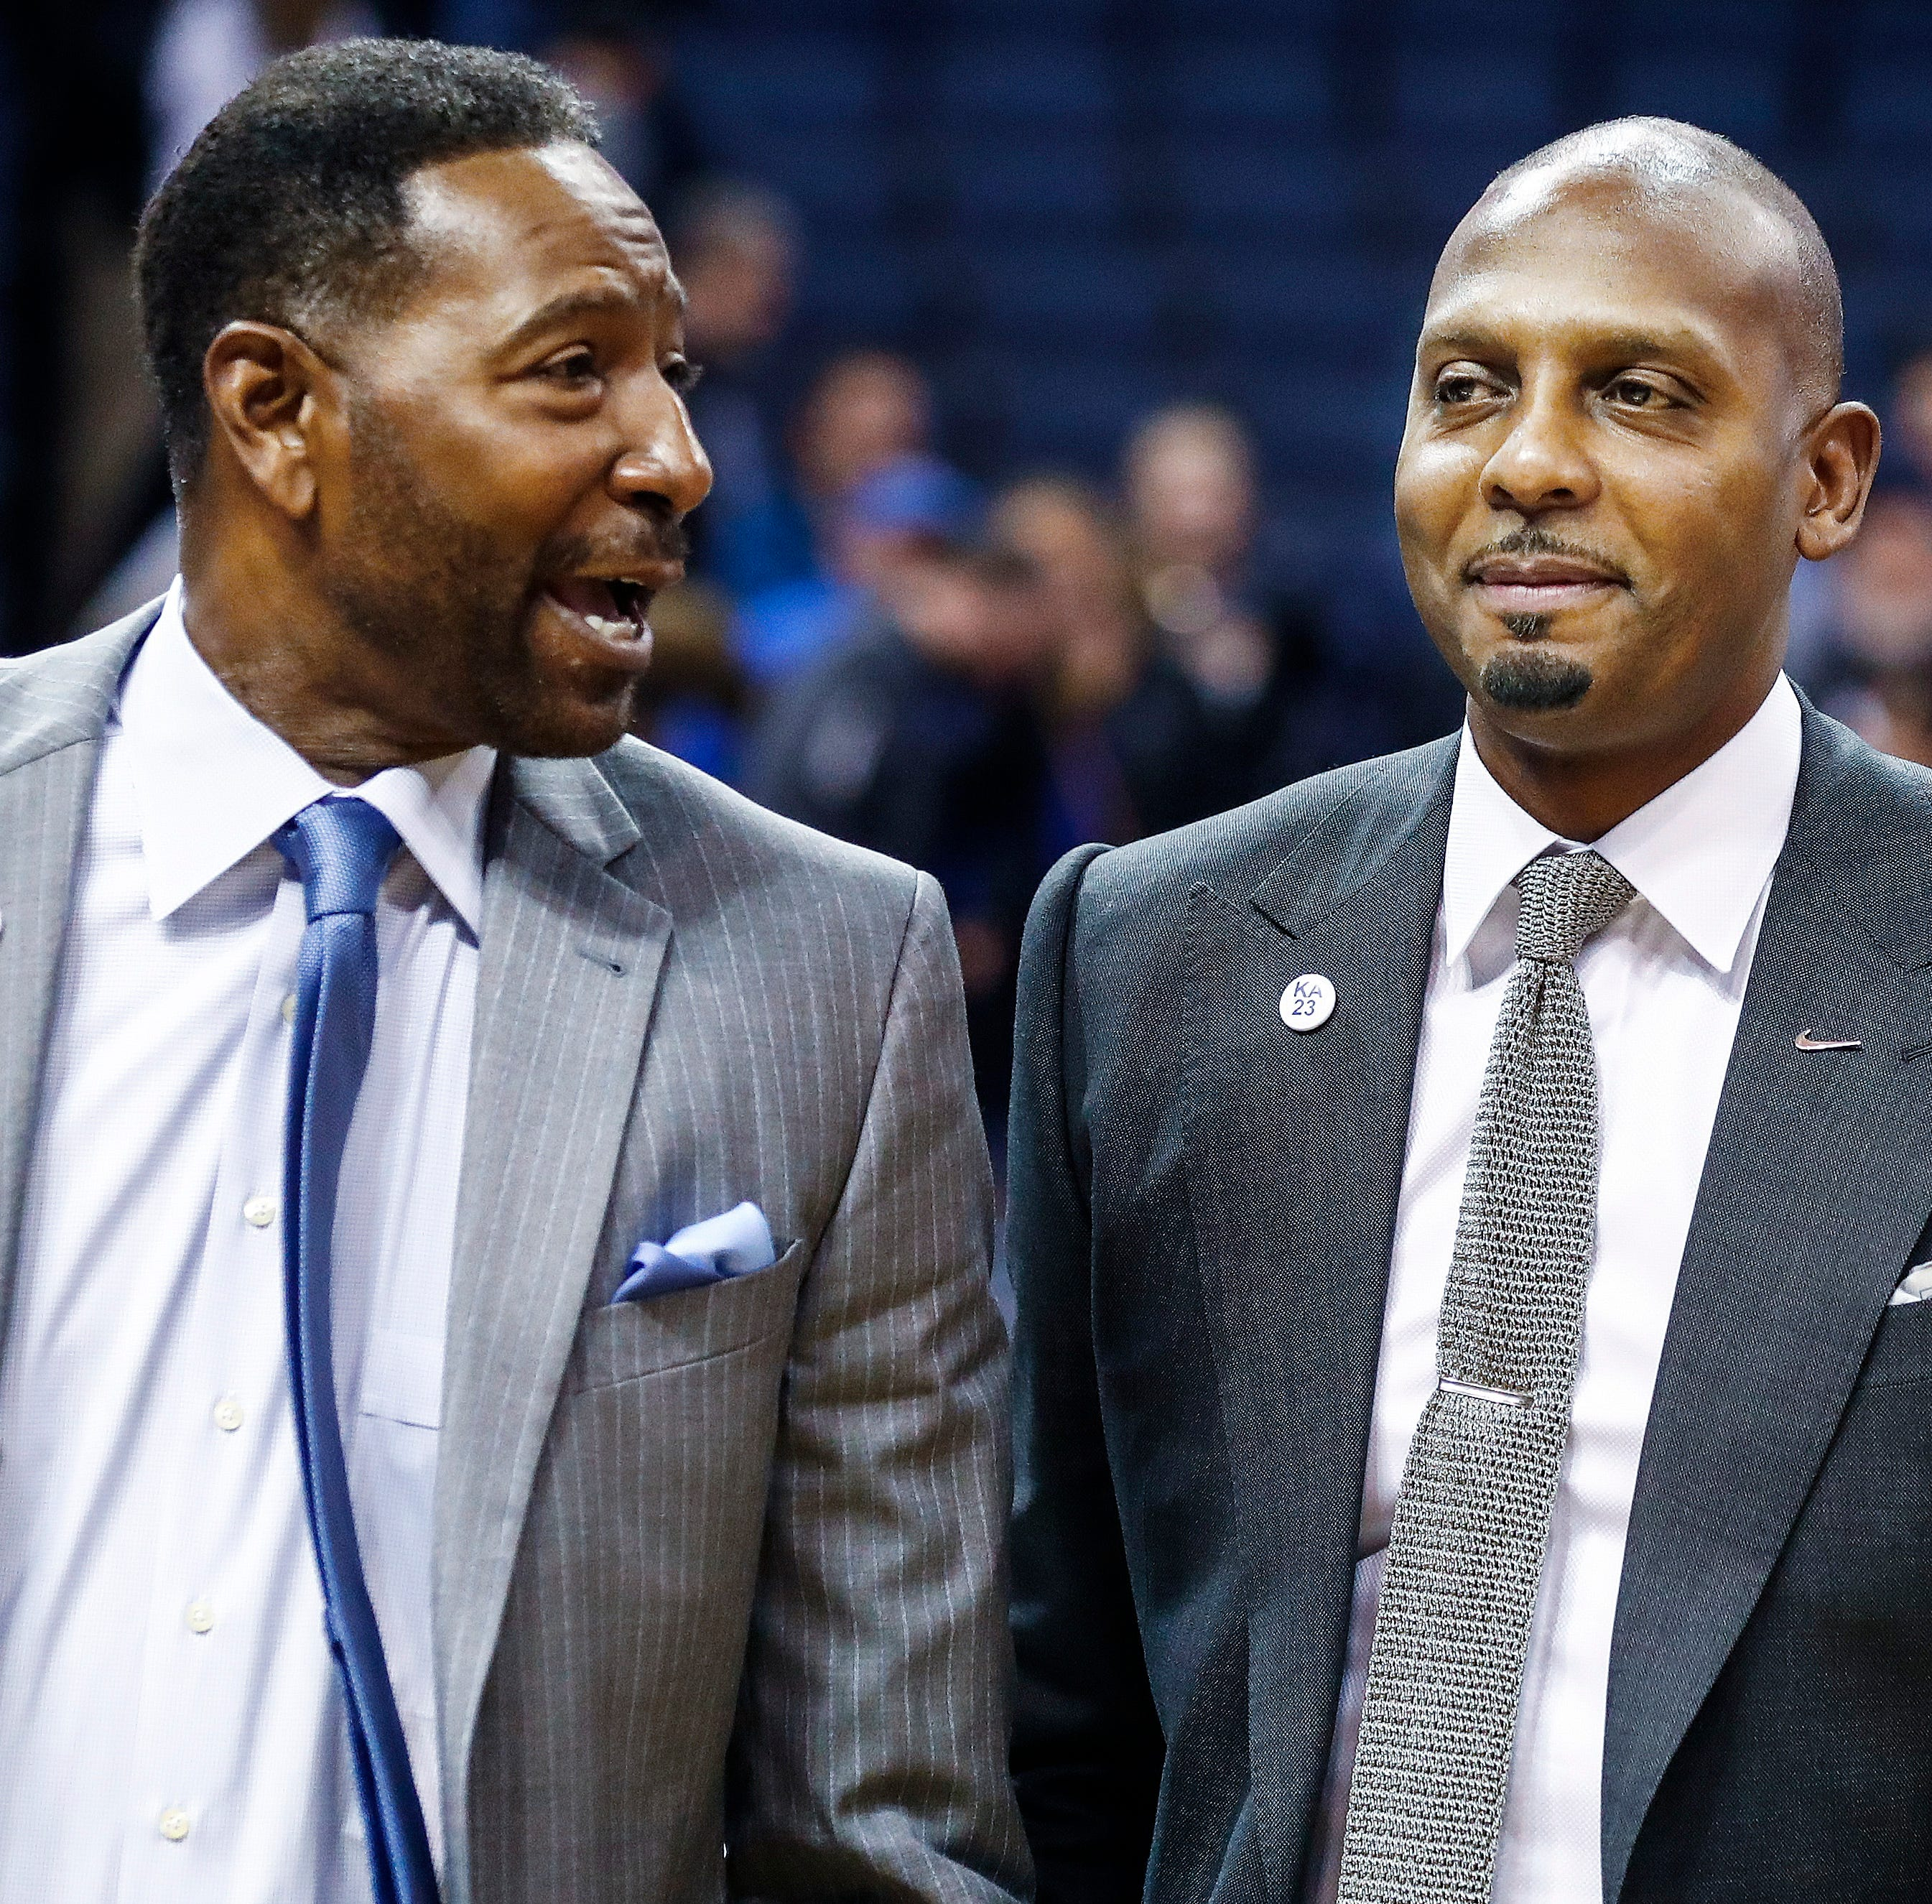 Memphis coach Penny Hardaway to appear on ESPN morning talk show 'Get Up!' on Wednesday